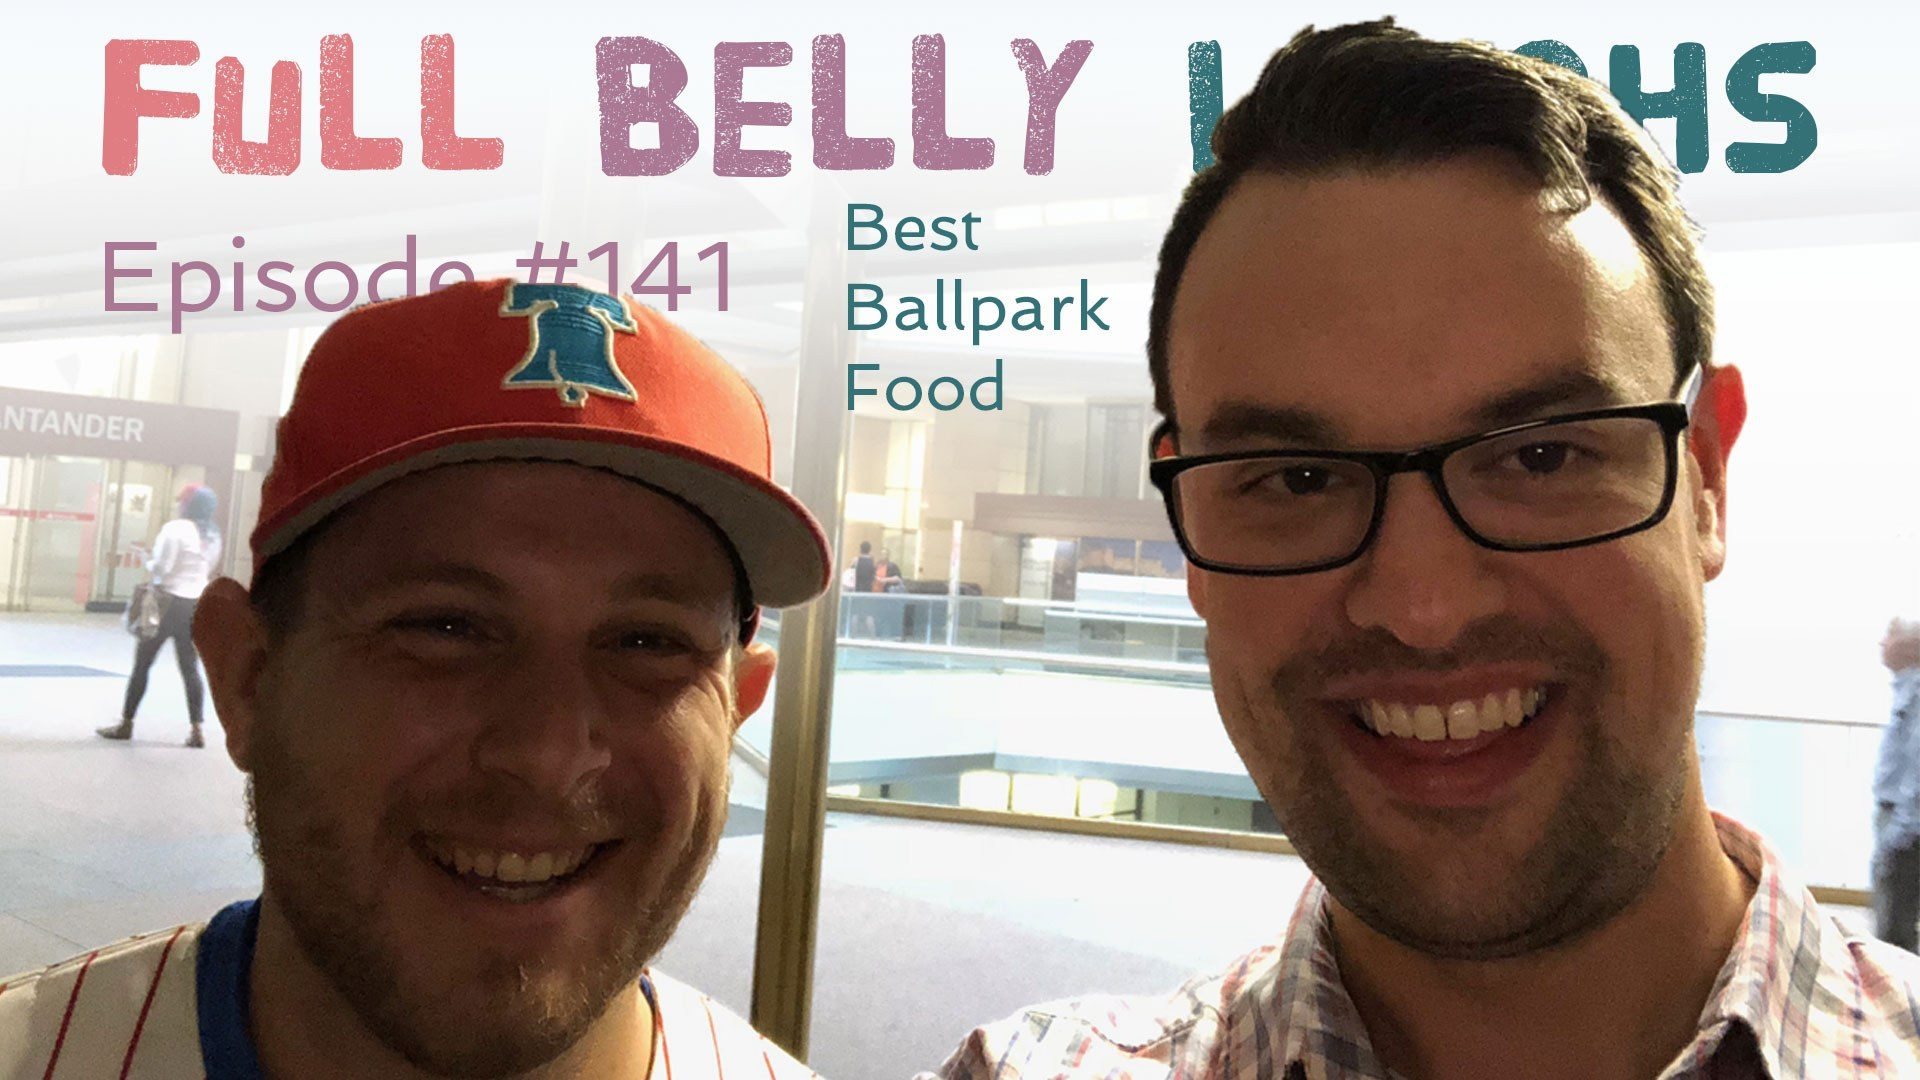 full belly laughs podcast episode 141 best ballpark food audio artwork